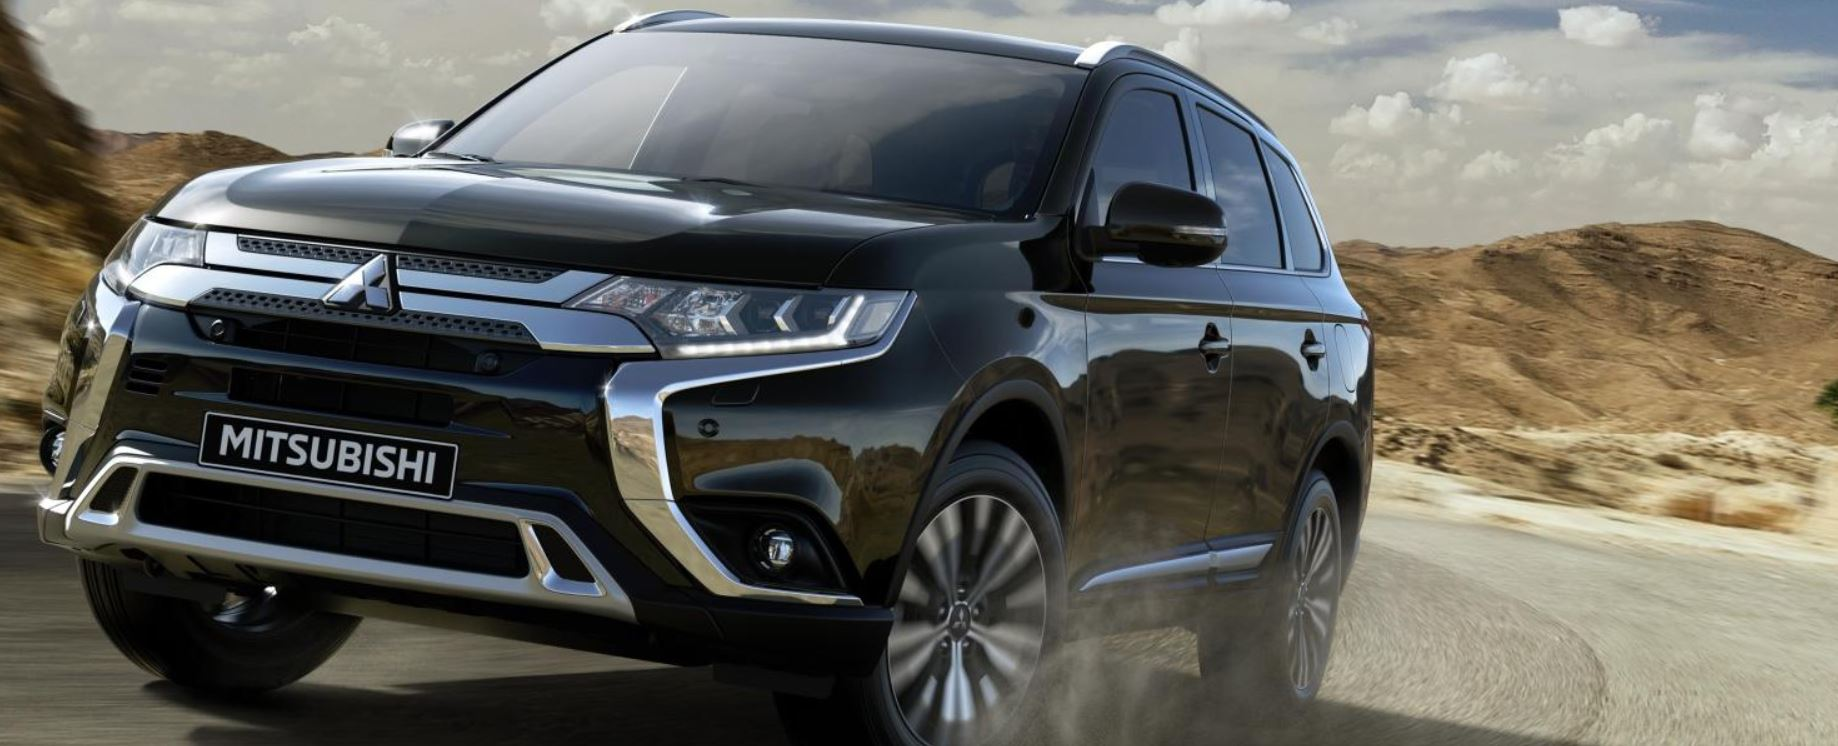 Mitsubishi Outlander using